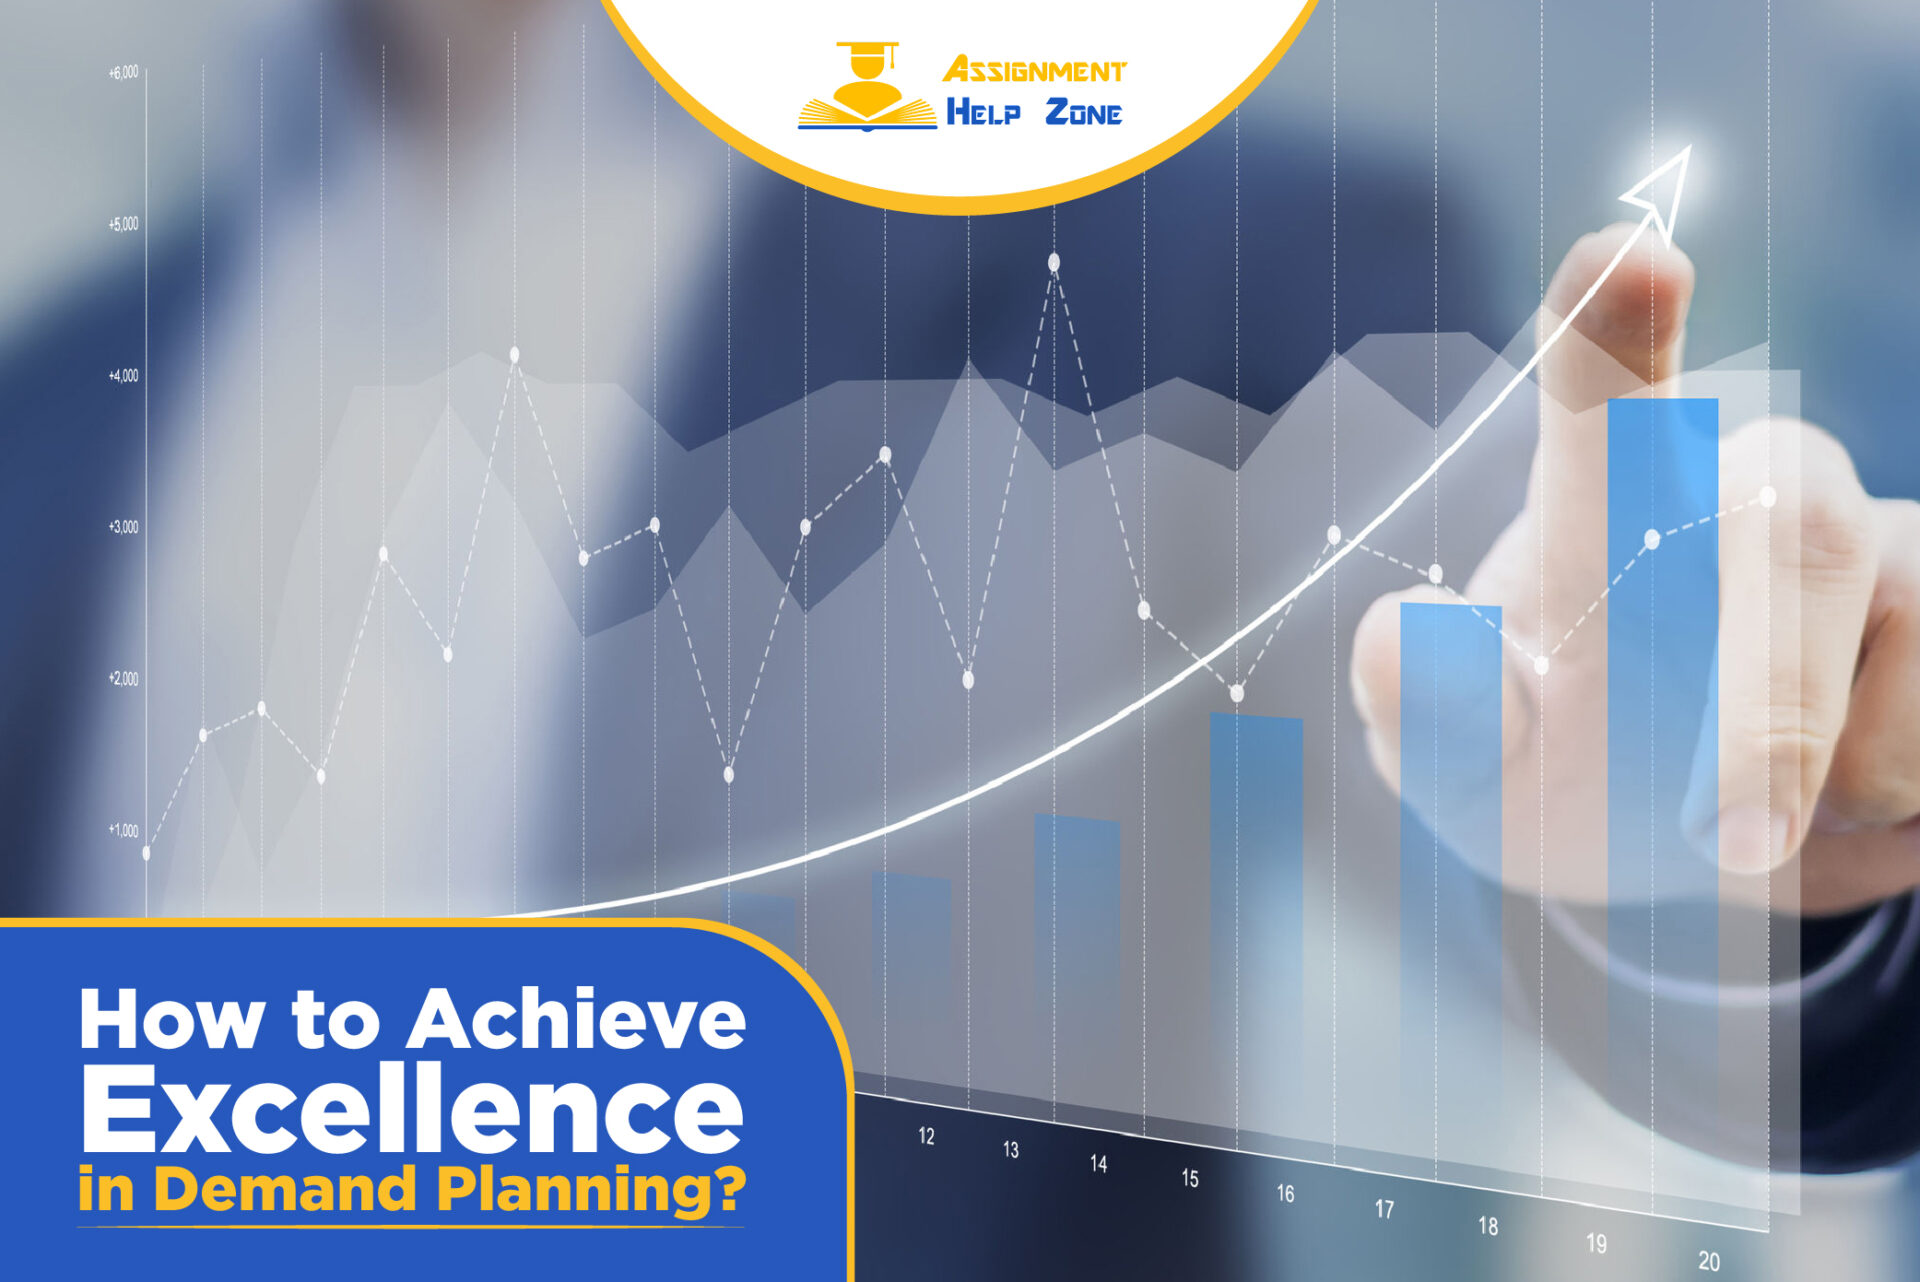 How to Achieve Excellence in Demand Planning.